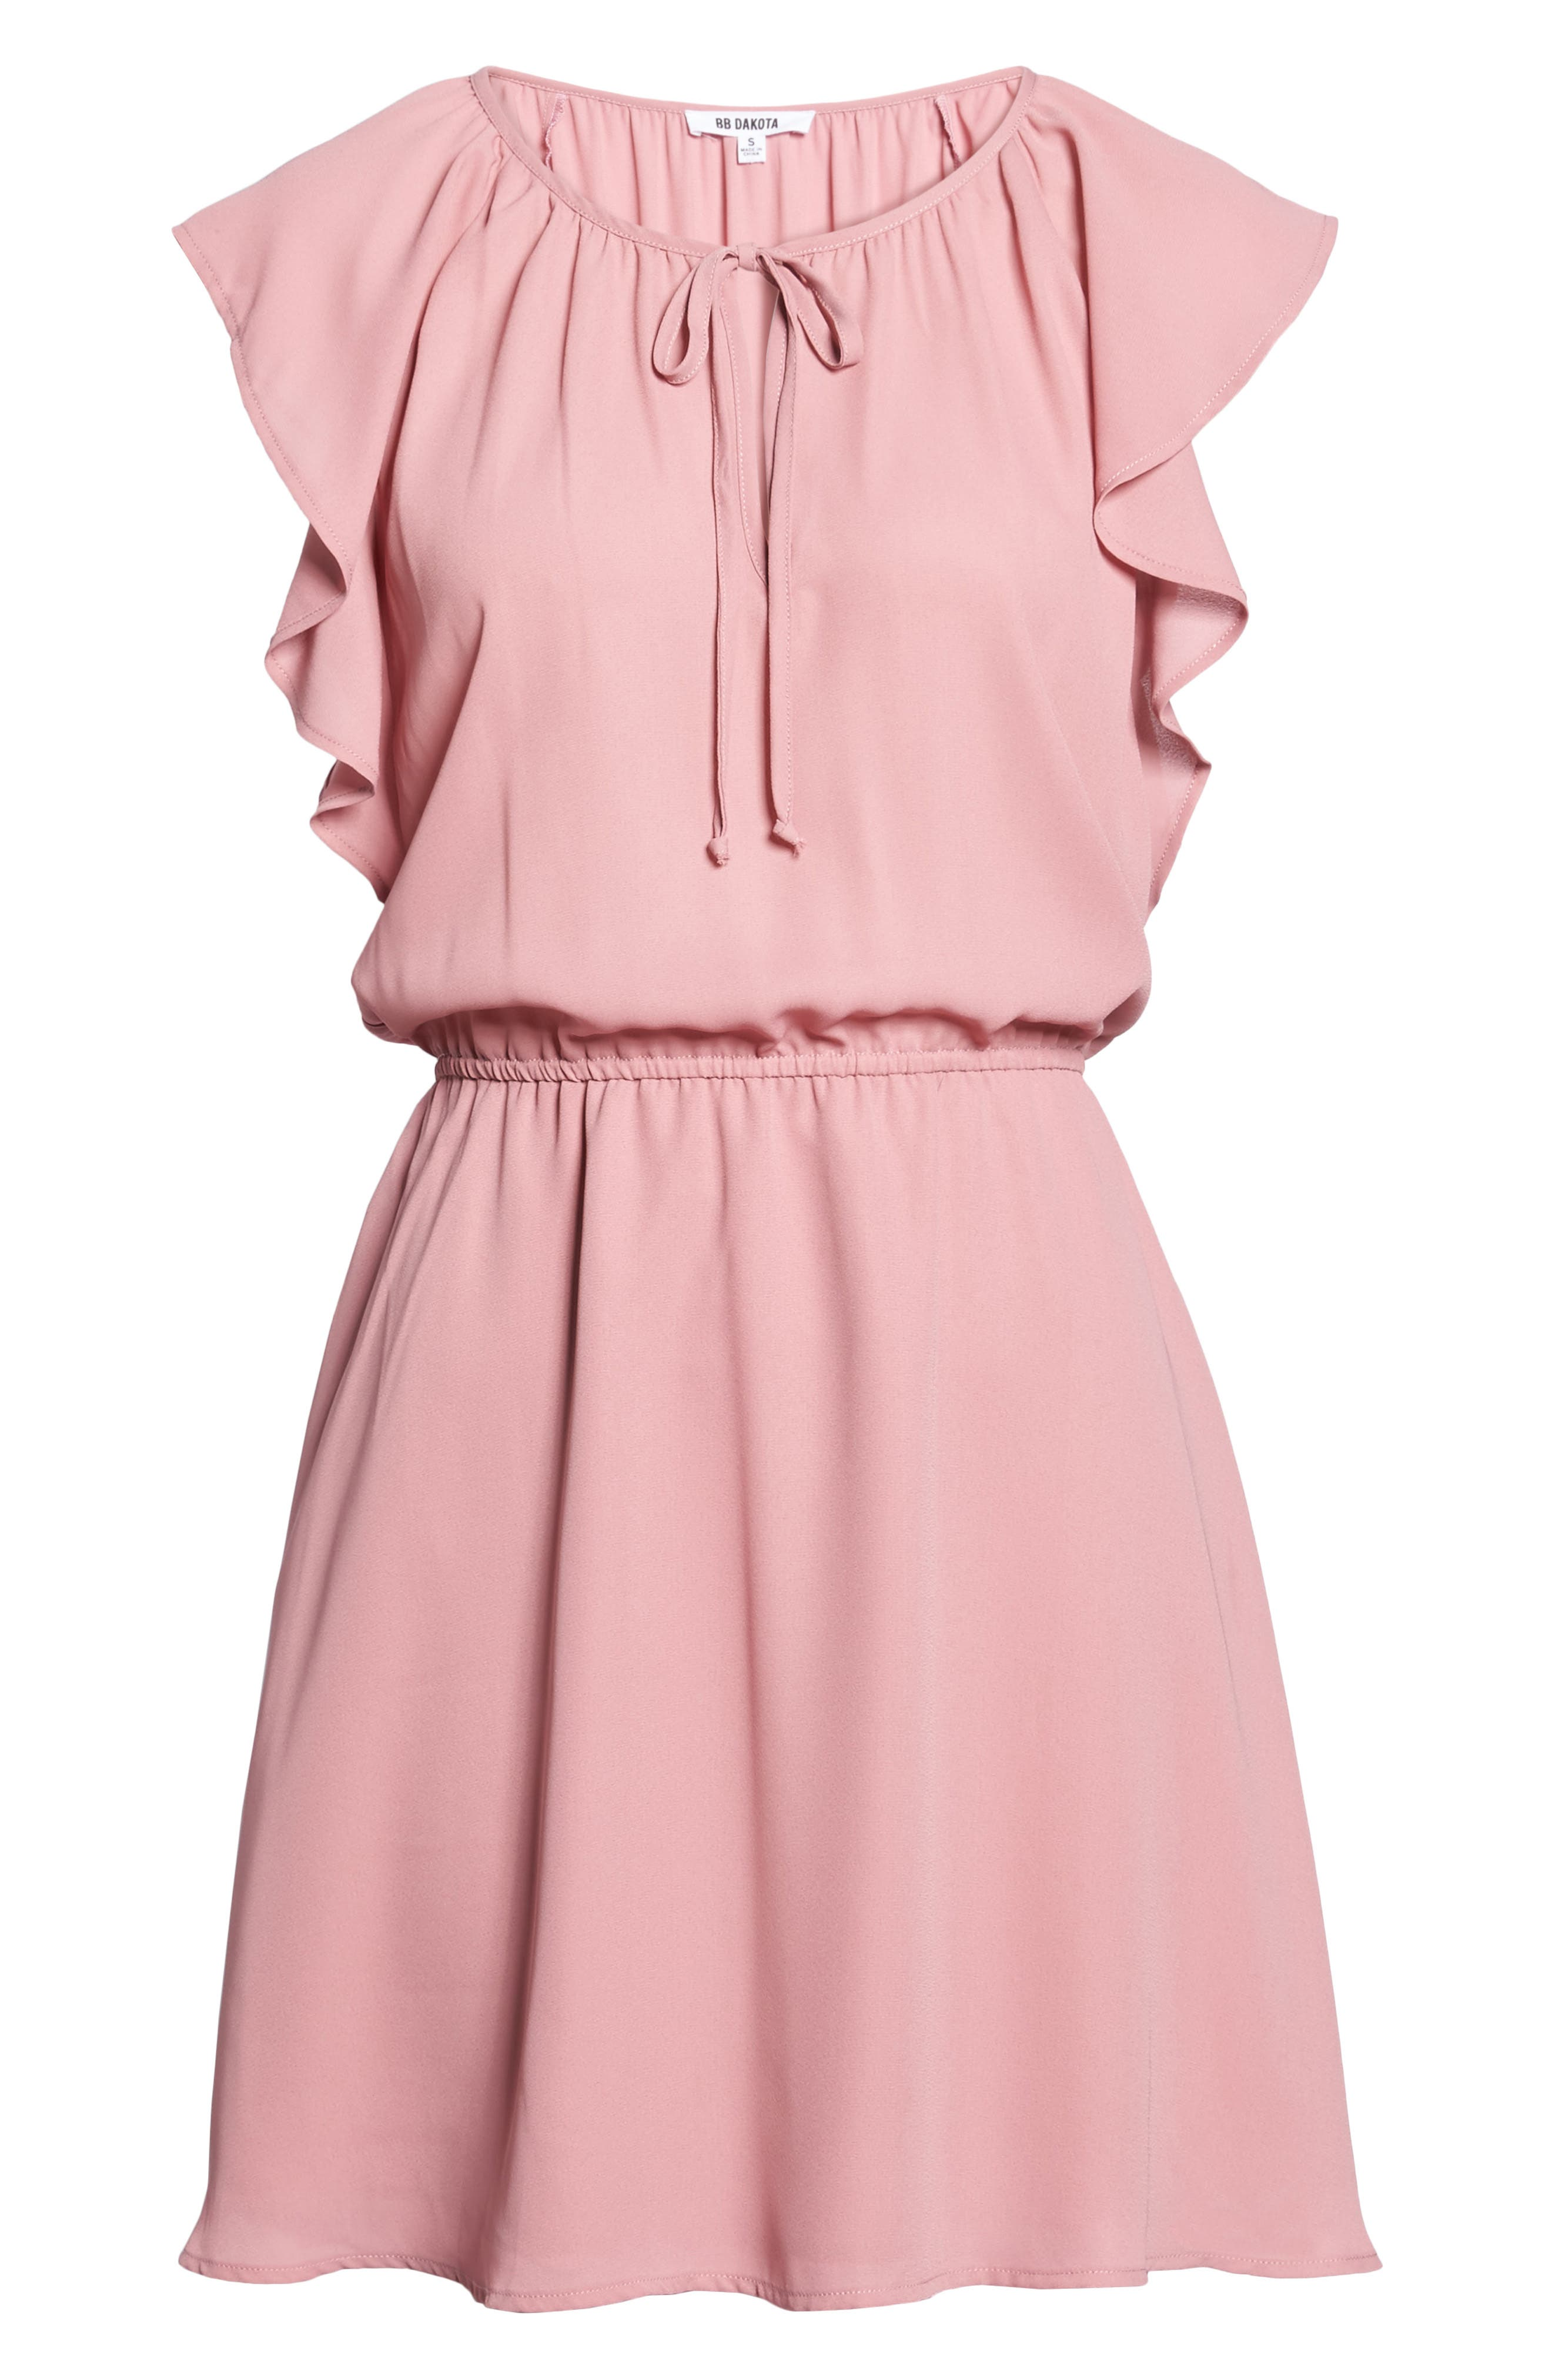 Adrienn Fit & Flare Dress,                             Alternate thumbnail 6, color,                             Dusty Rose